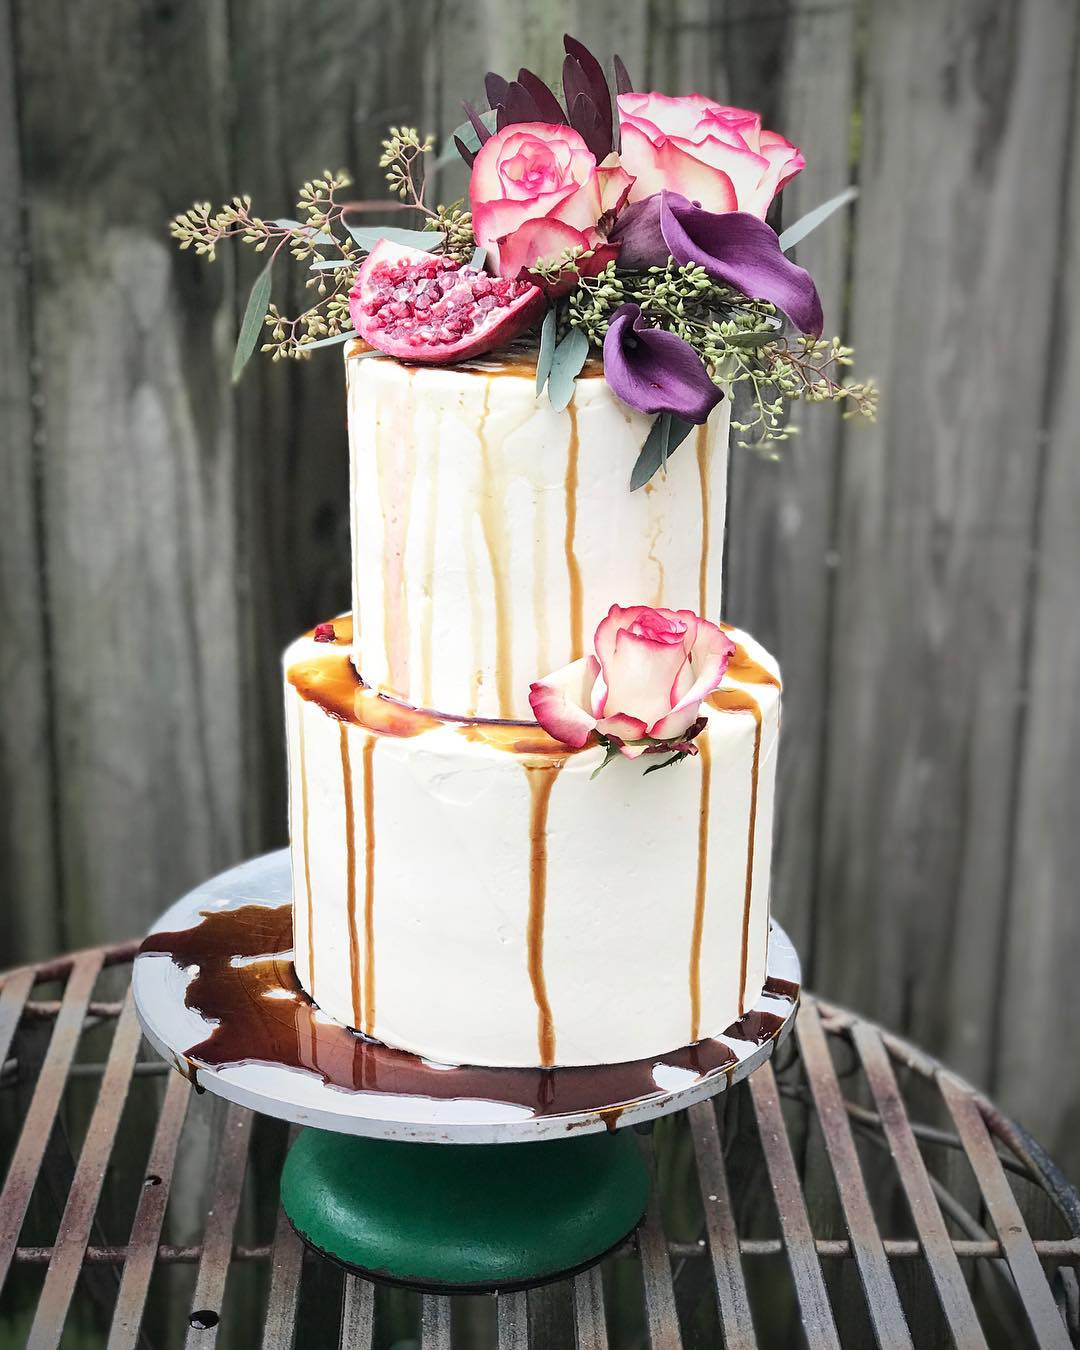 Two tiered cakes topped with real flowers